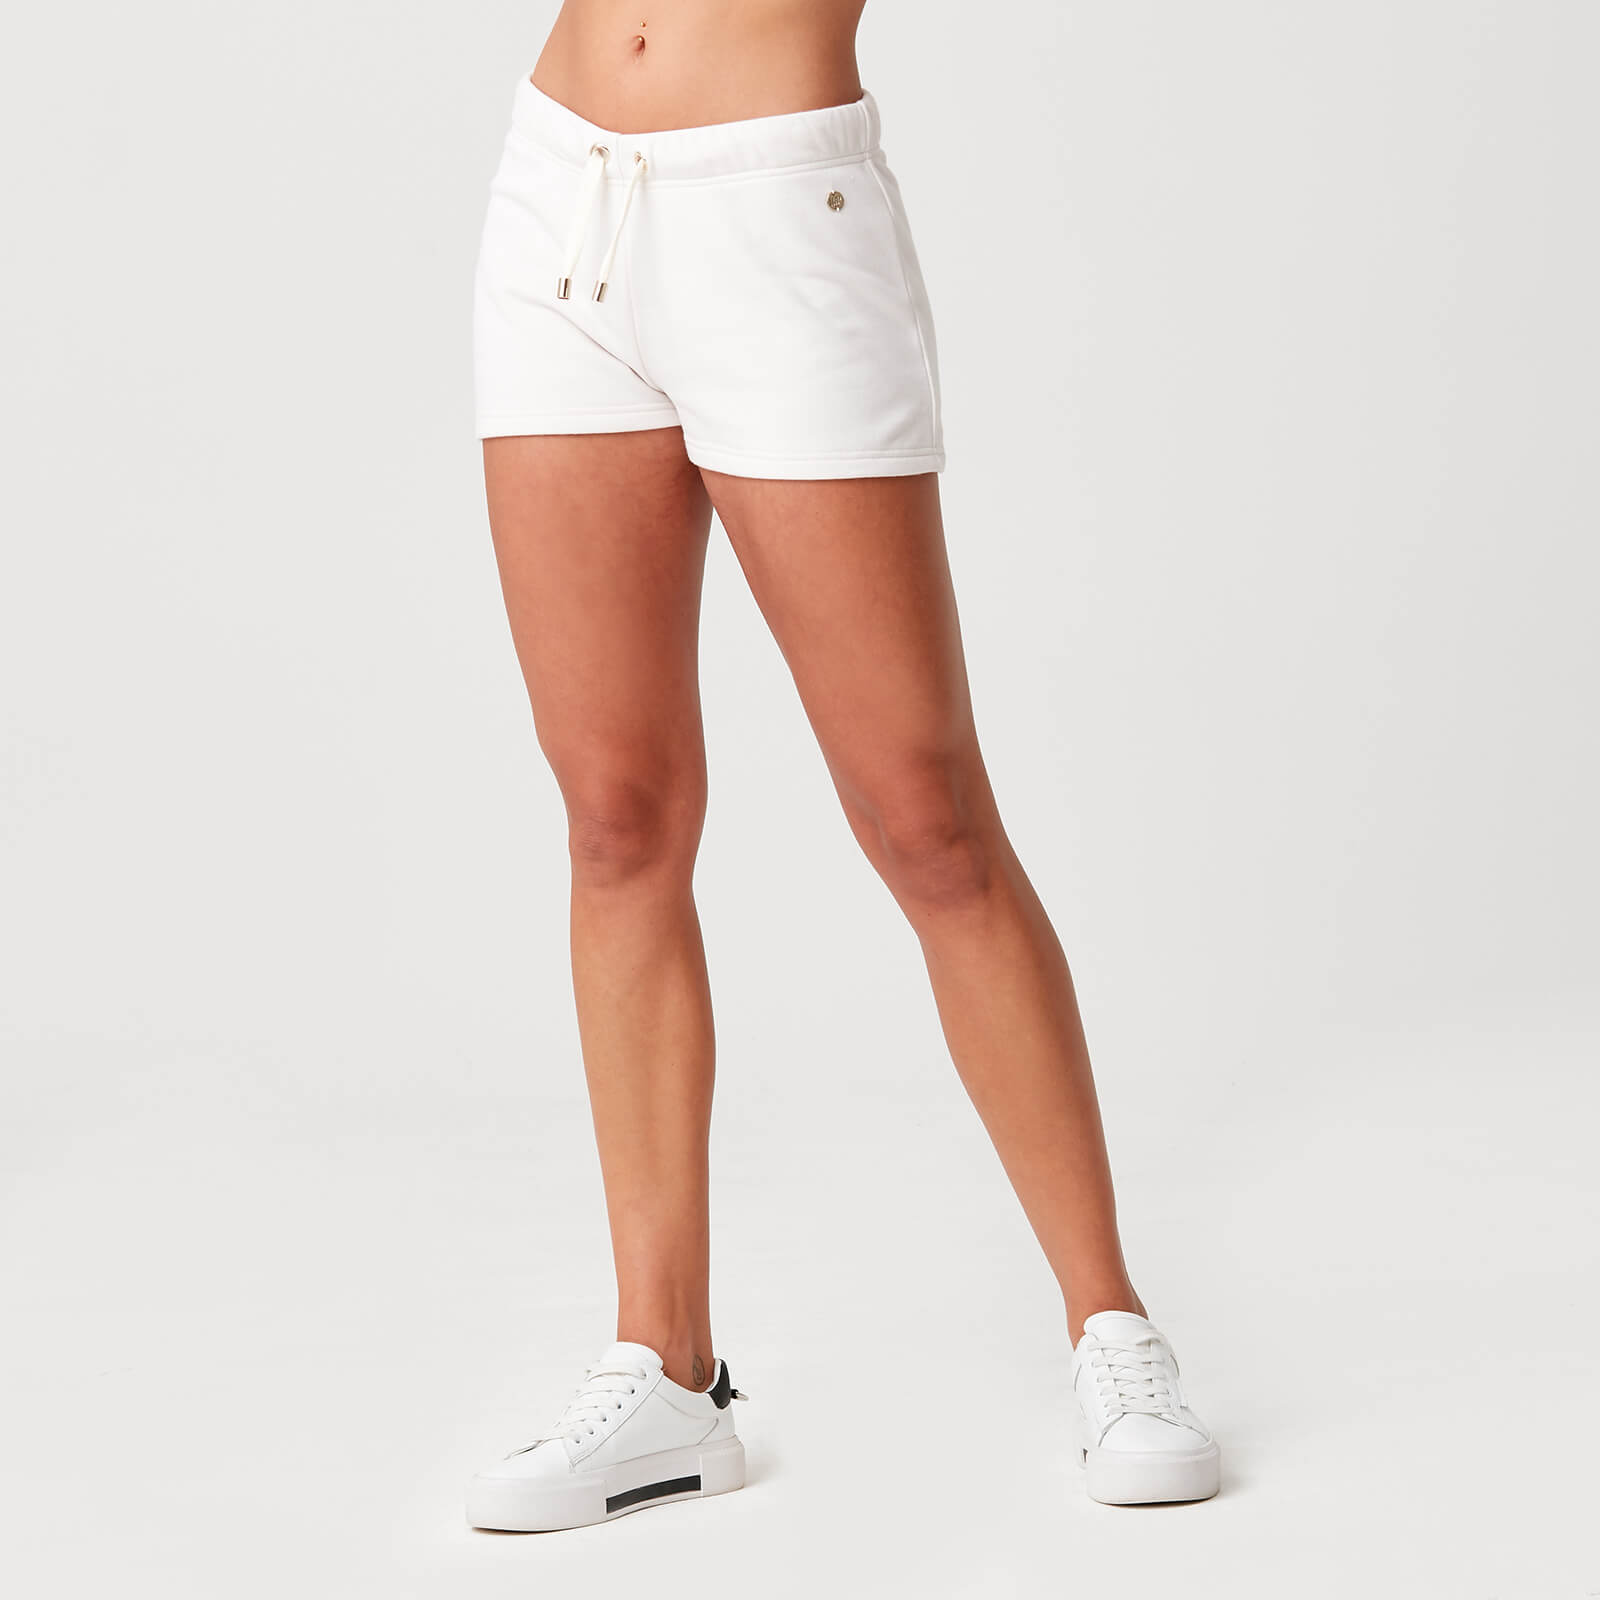 Luxe Lounge Shorts - Oatmeal - XS